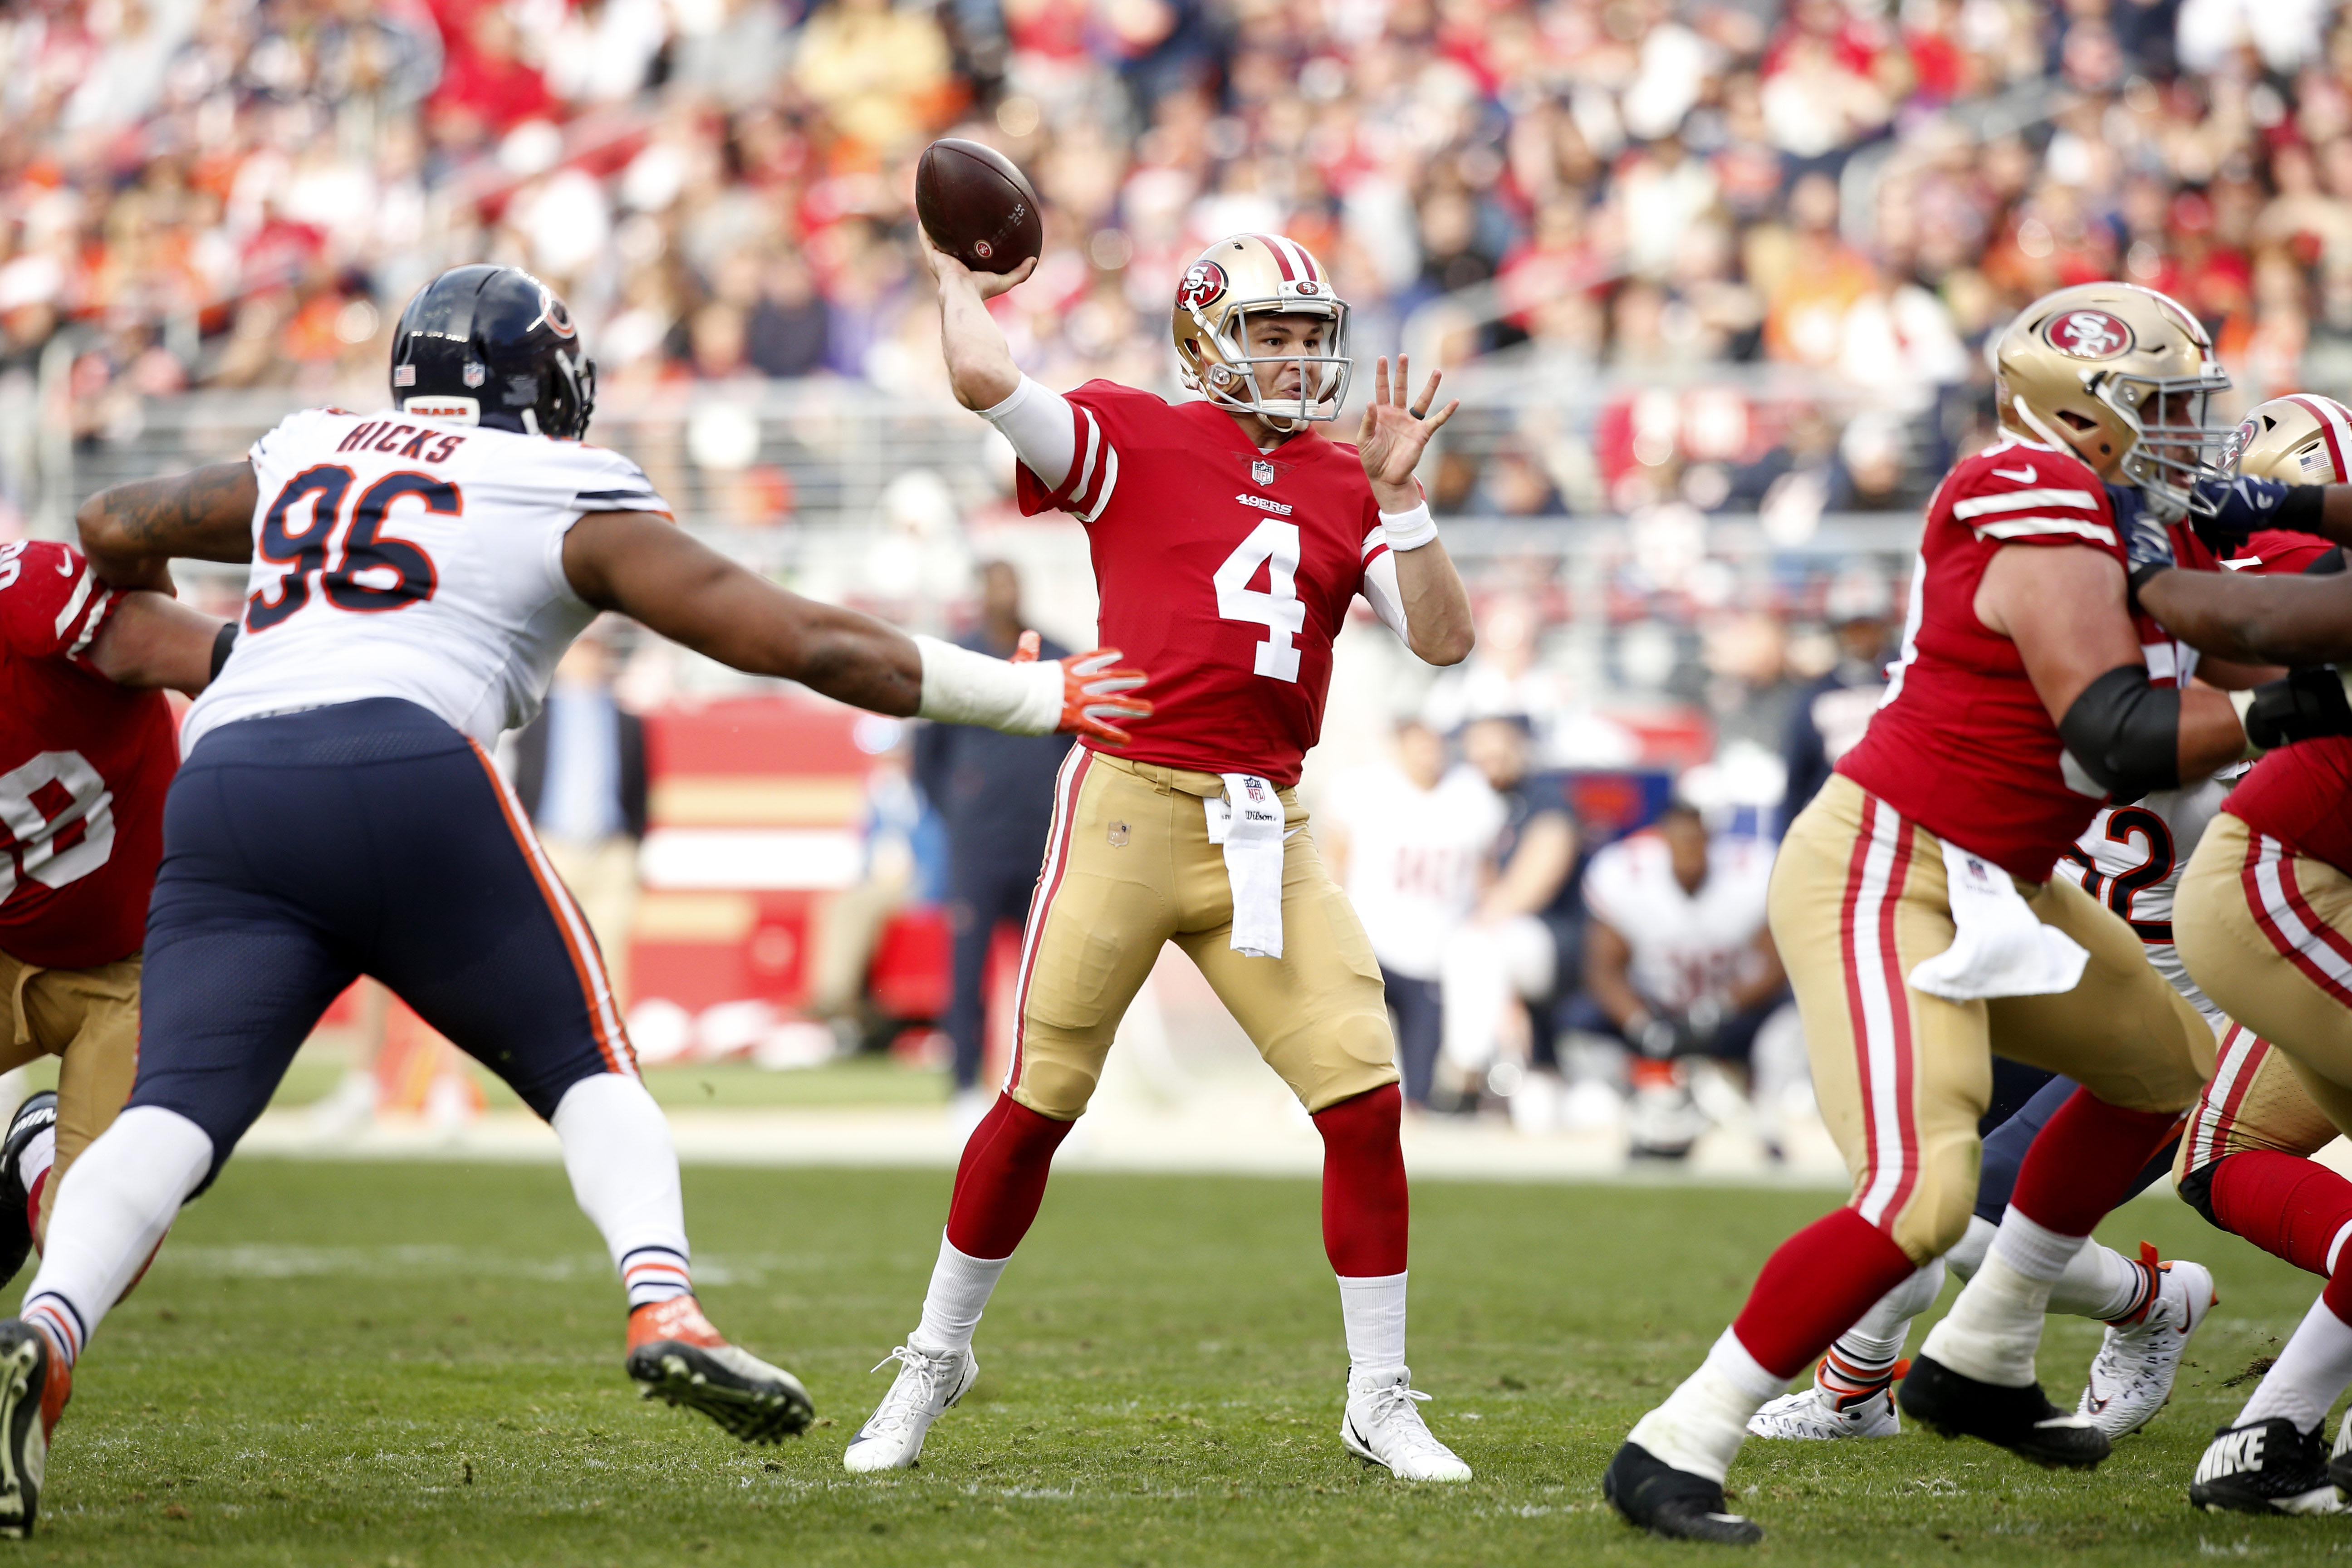 NFL: Chicago Bears at San Francisco 49ers